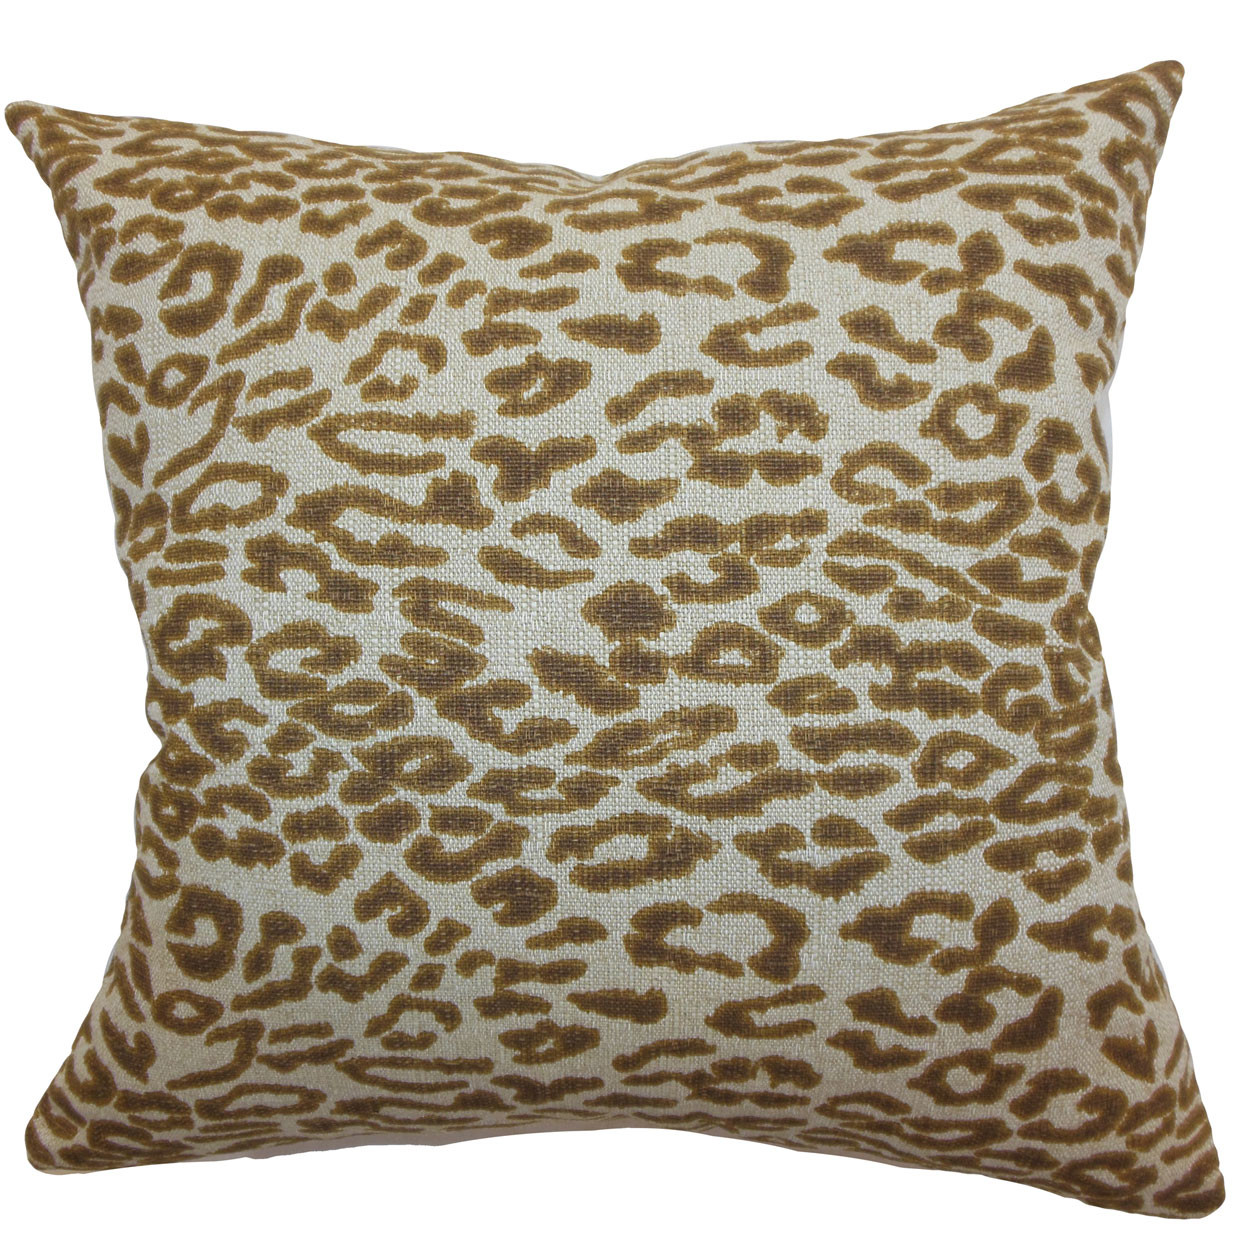 The Pillow Collection Egeria Leopard Print Cotton Pillow